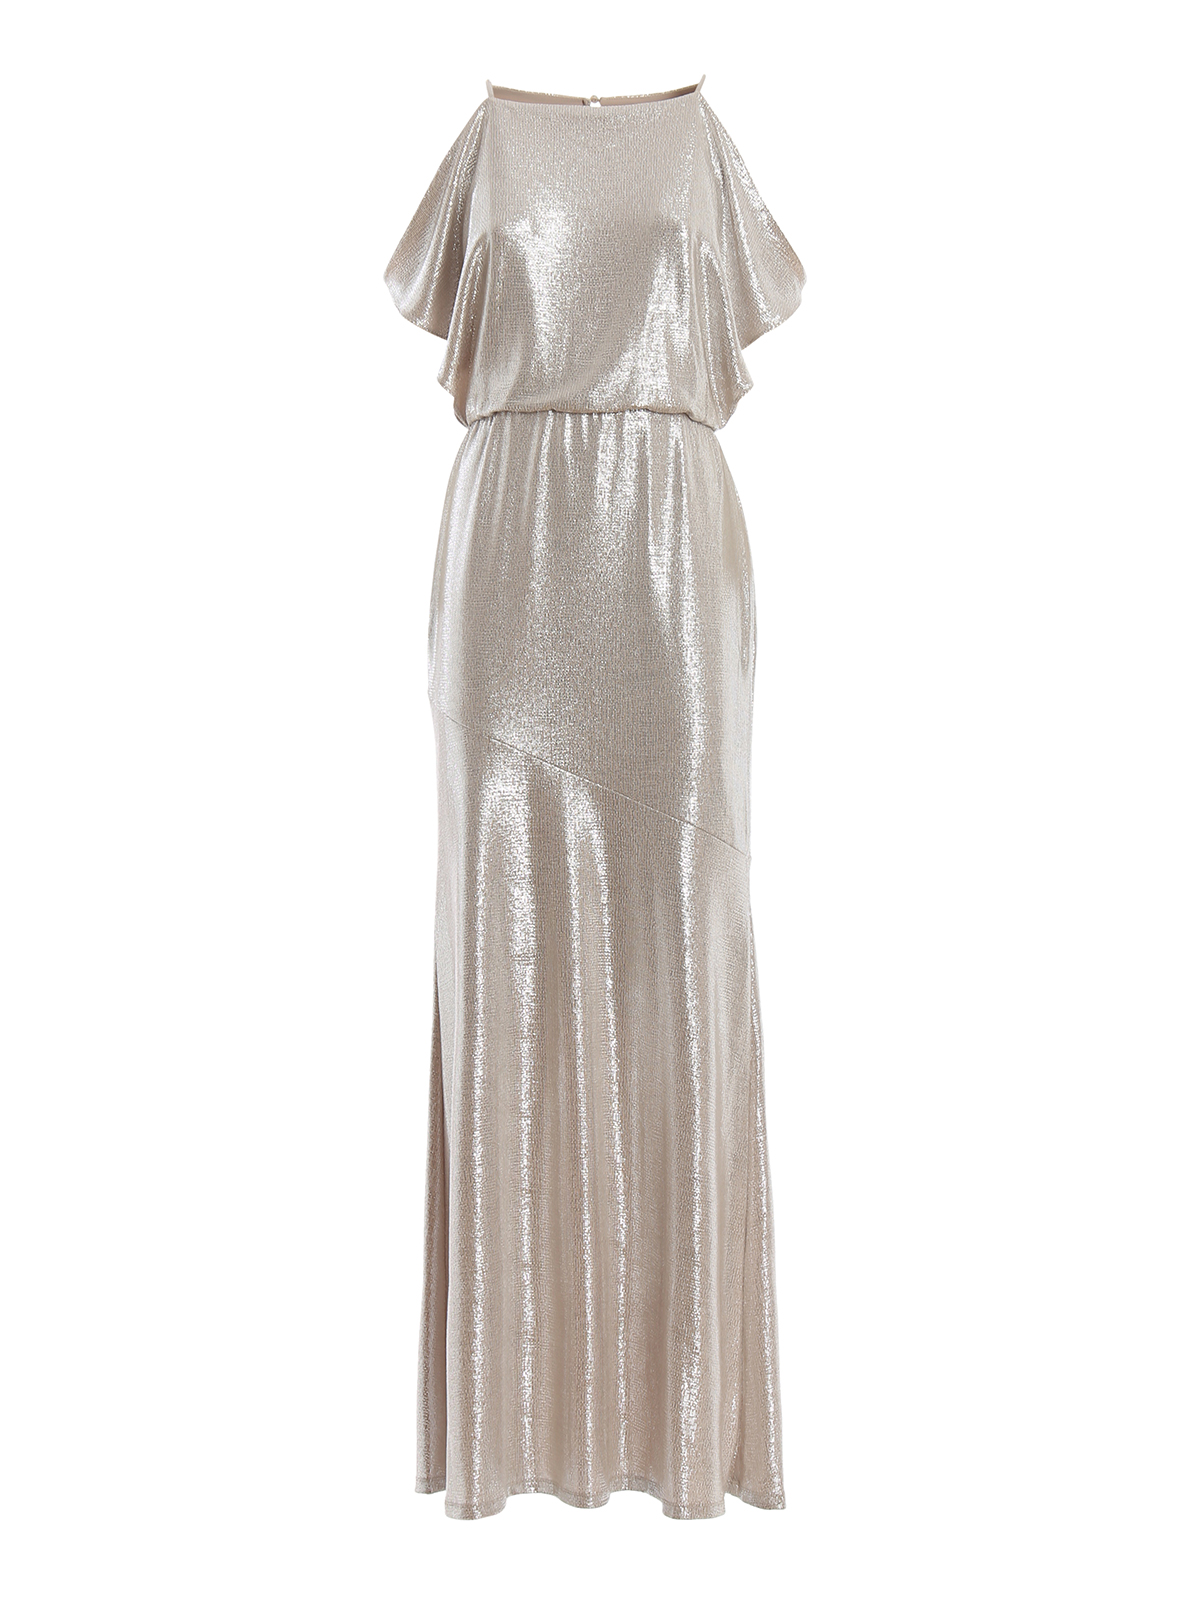 9040e2e431 LAUREN RALPH LAUREN  evening dresses - Zelder metallic fabric evening dress